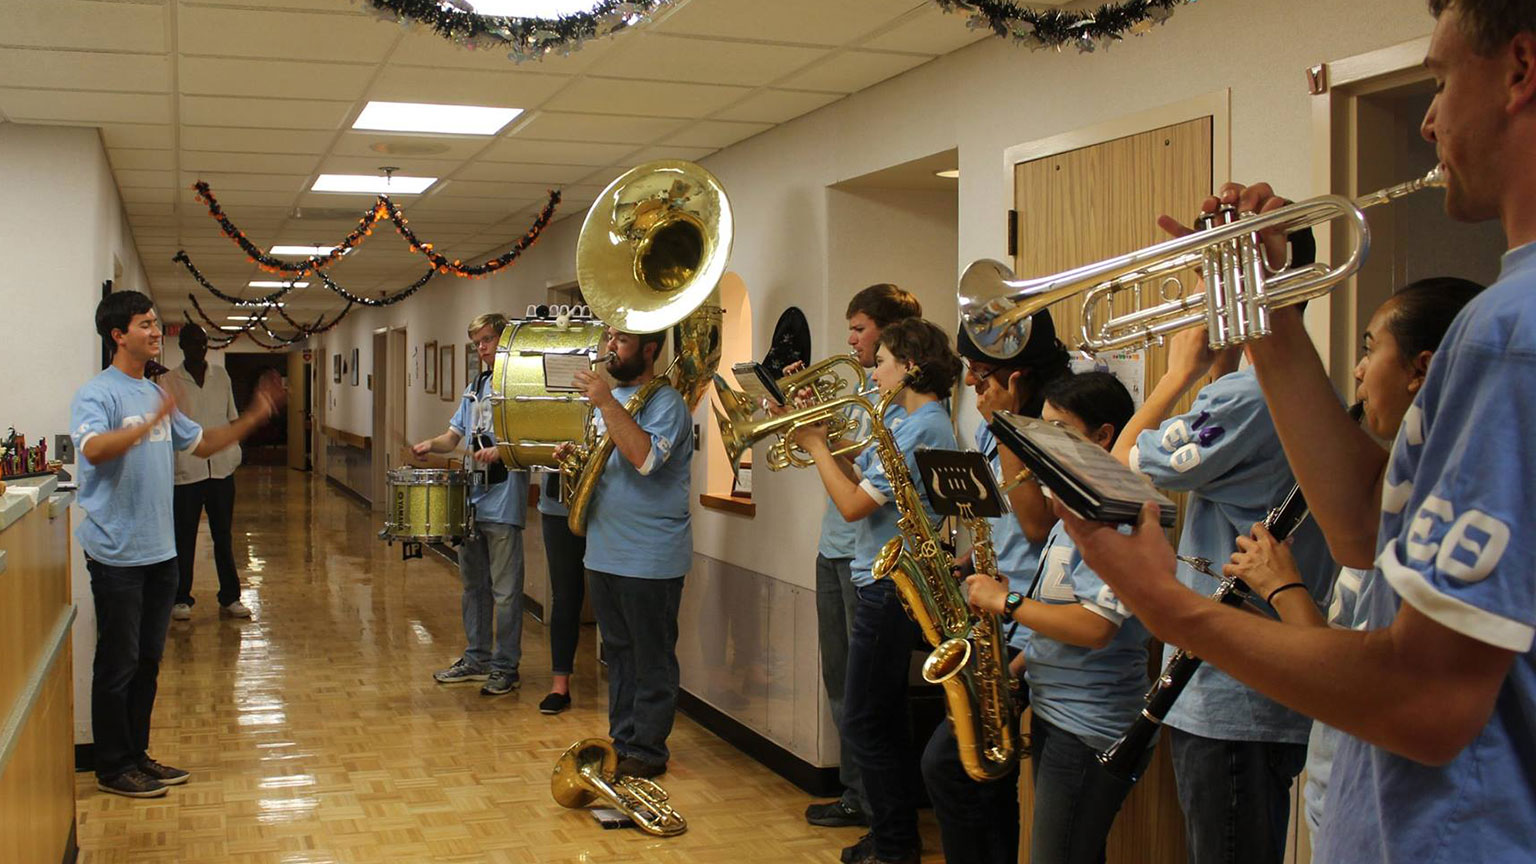 Members of the Kappa Kappa Psi marching band fraternity play in a hospital hallway, decorated with festive garlands.